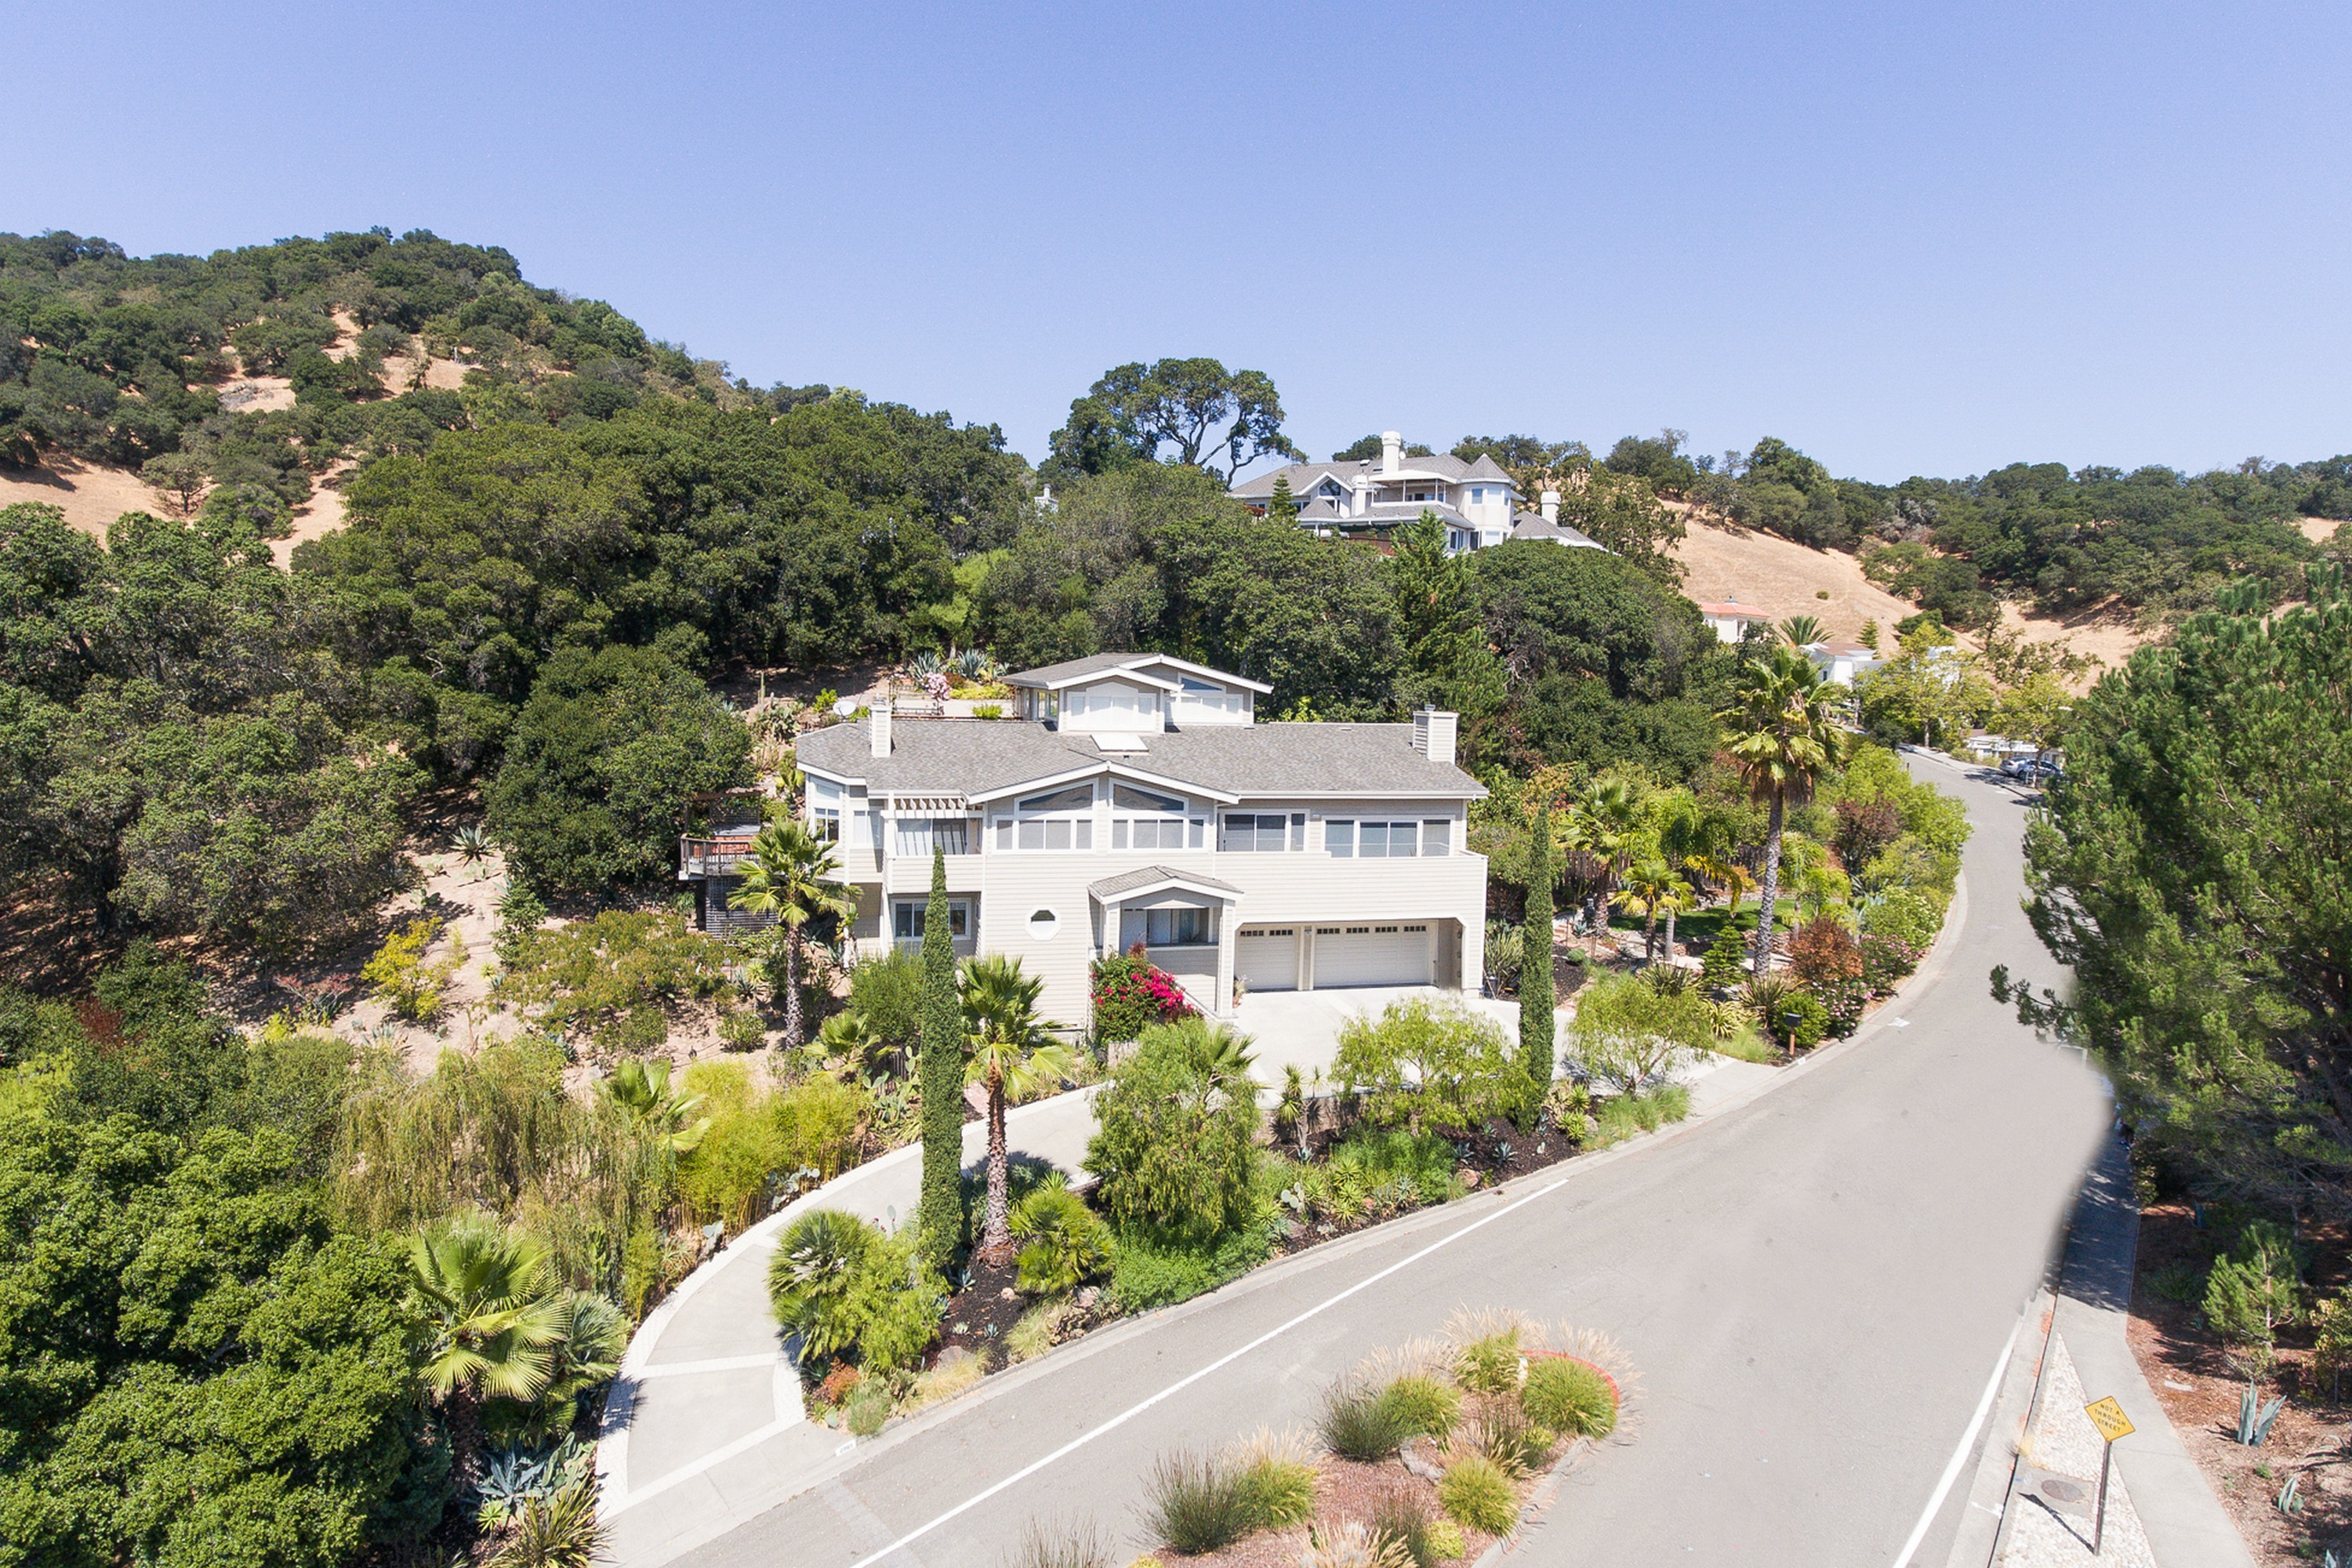 단독 가정 주택 용 매매 에 Spectacular Views in Desirable Regency Estates 2901 Las Gallinas Ave San Rafael, 캘리포니아, 94903 미국